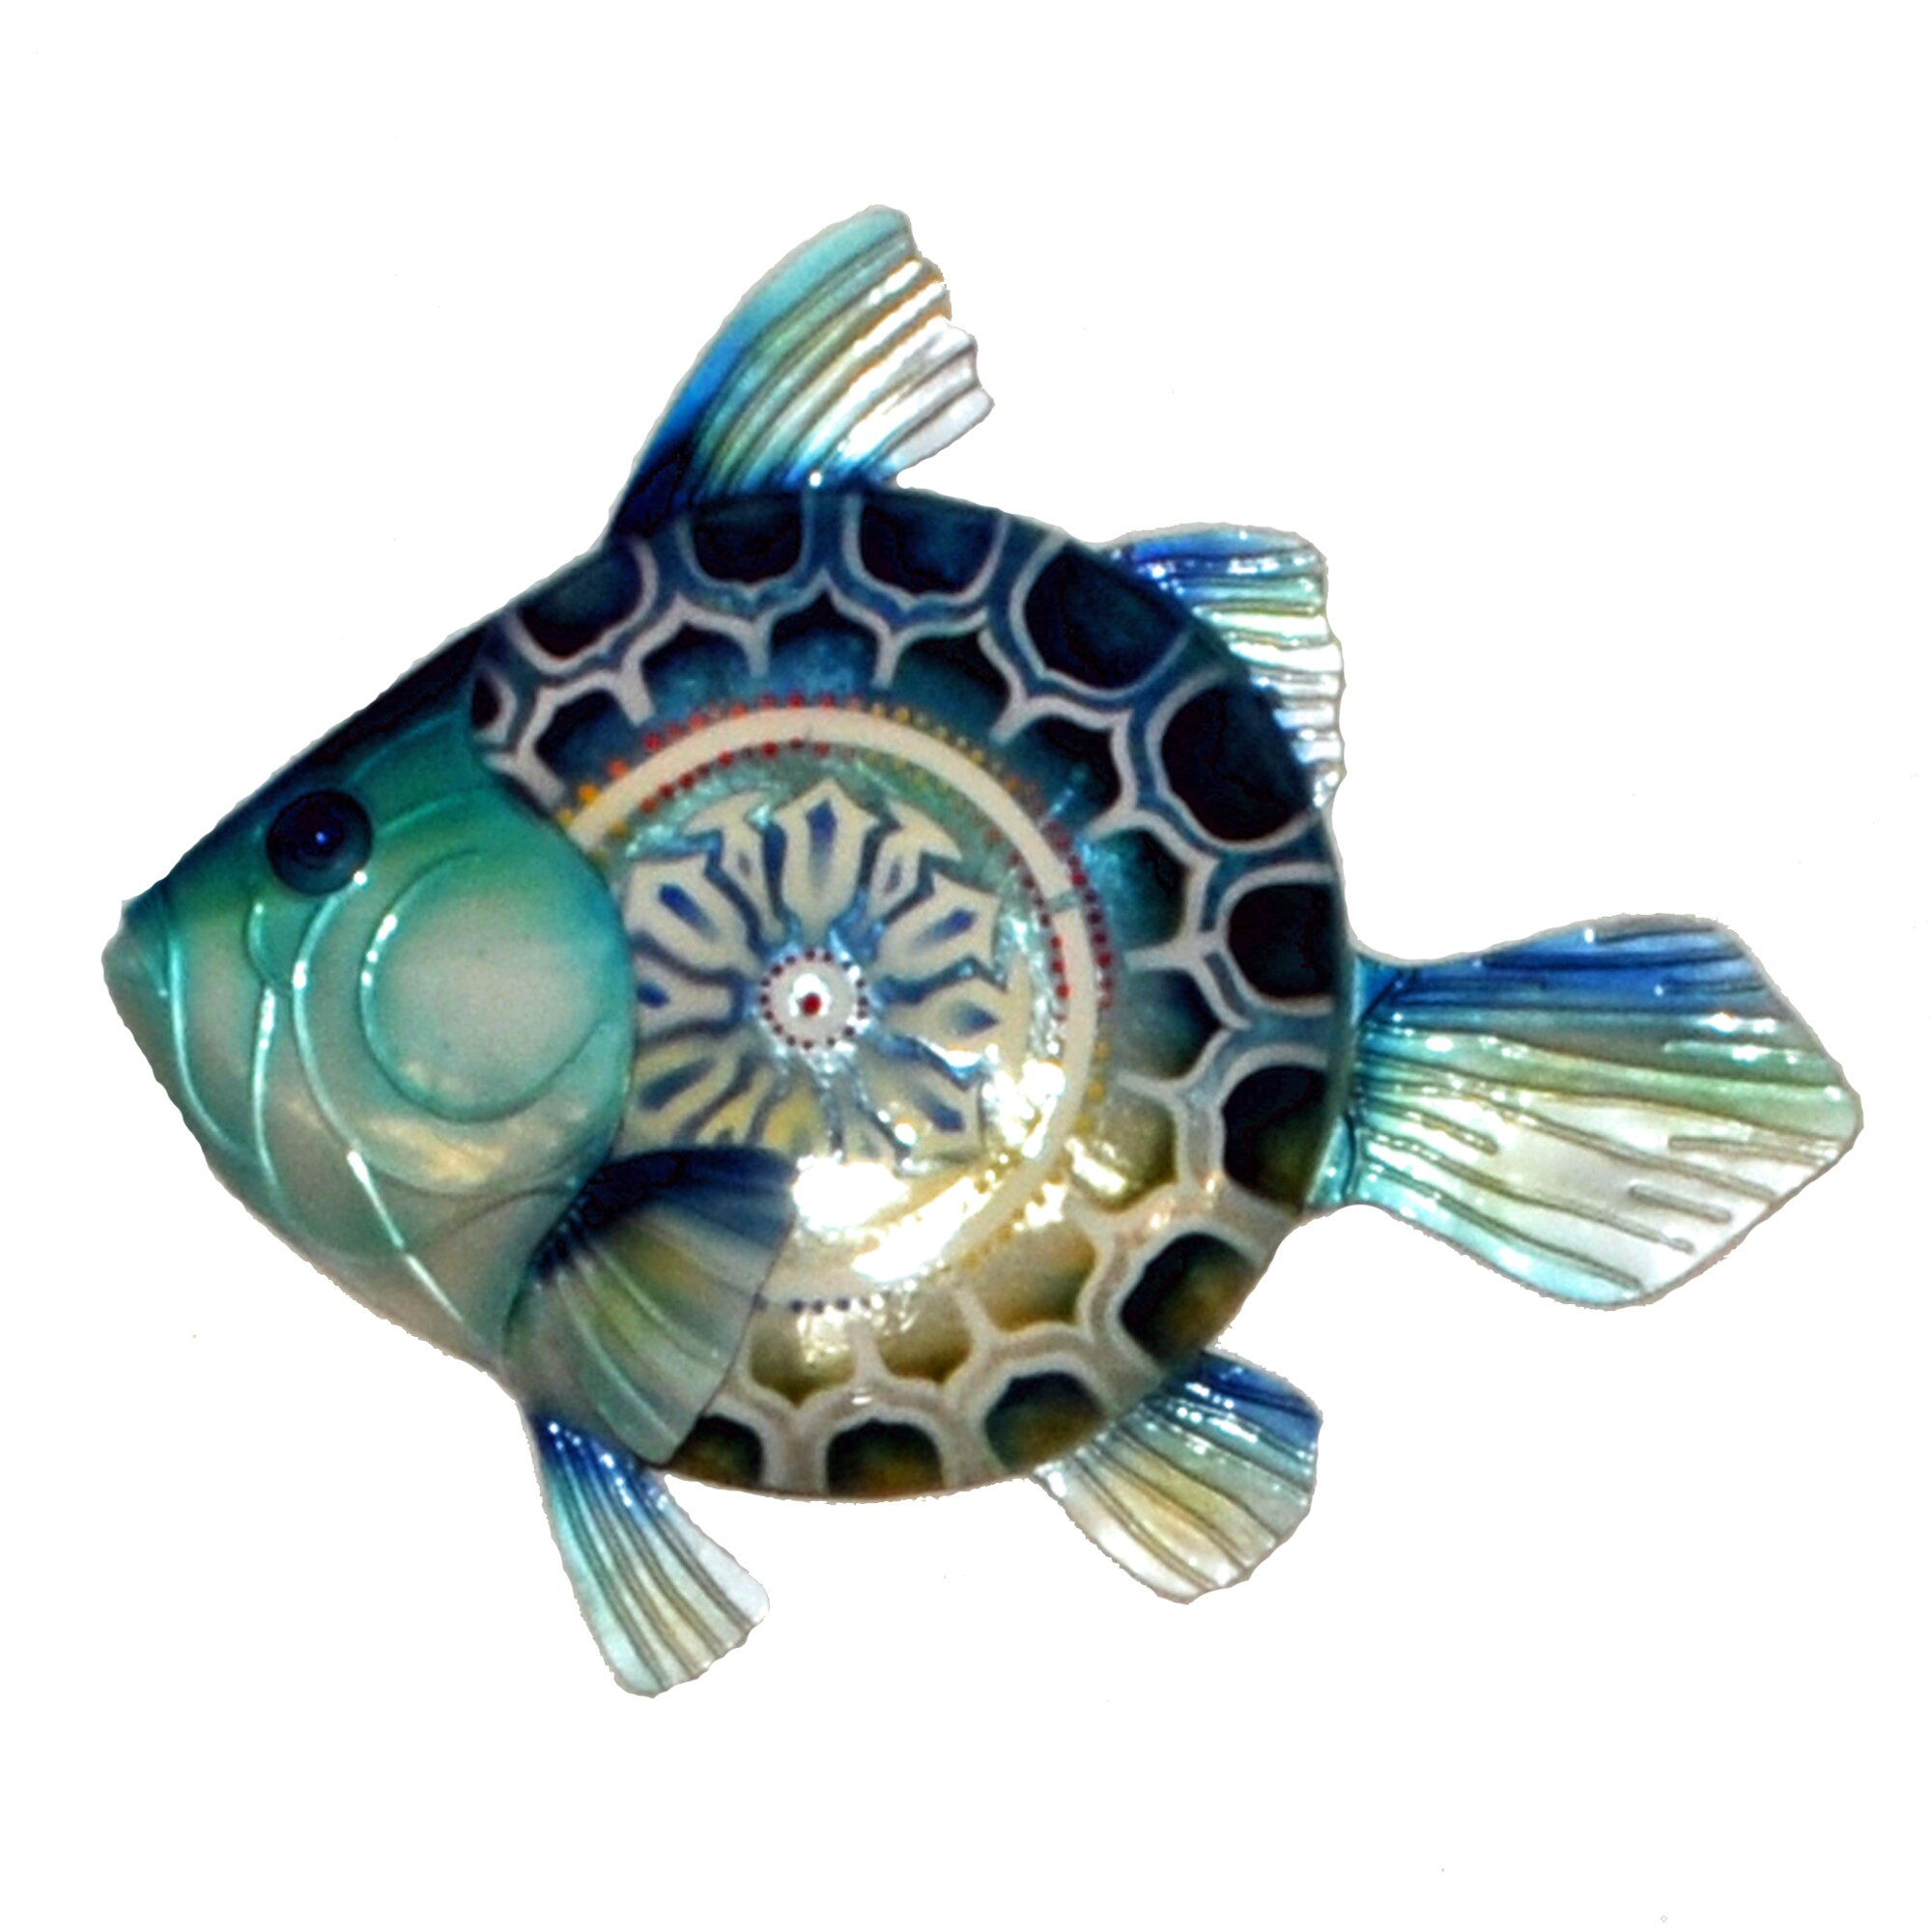 Wall Decor With Fish : Fish wall decor wayfair